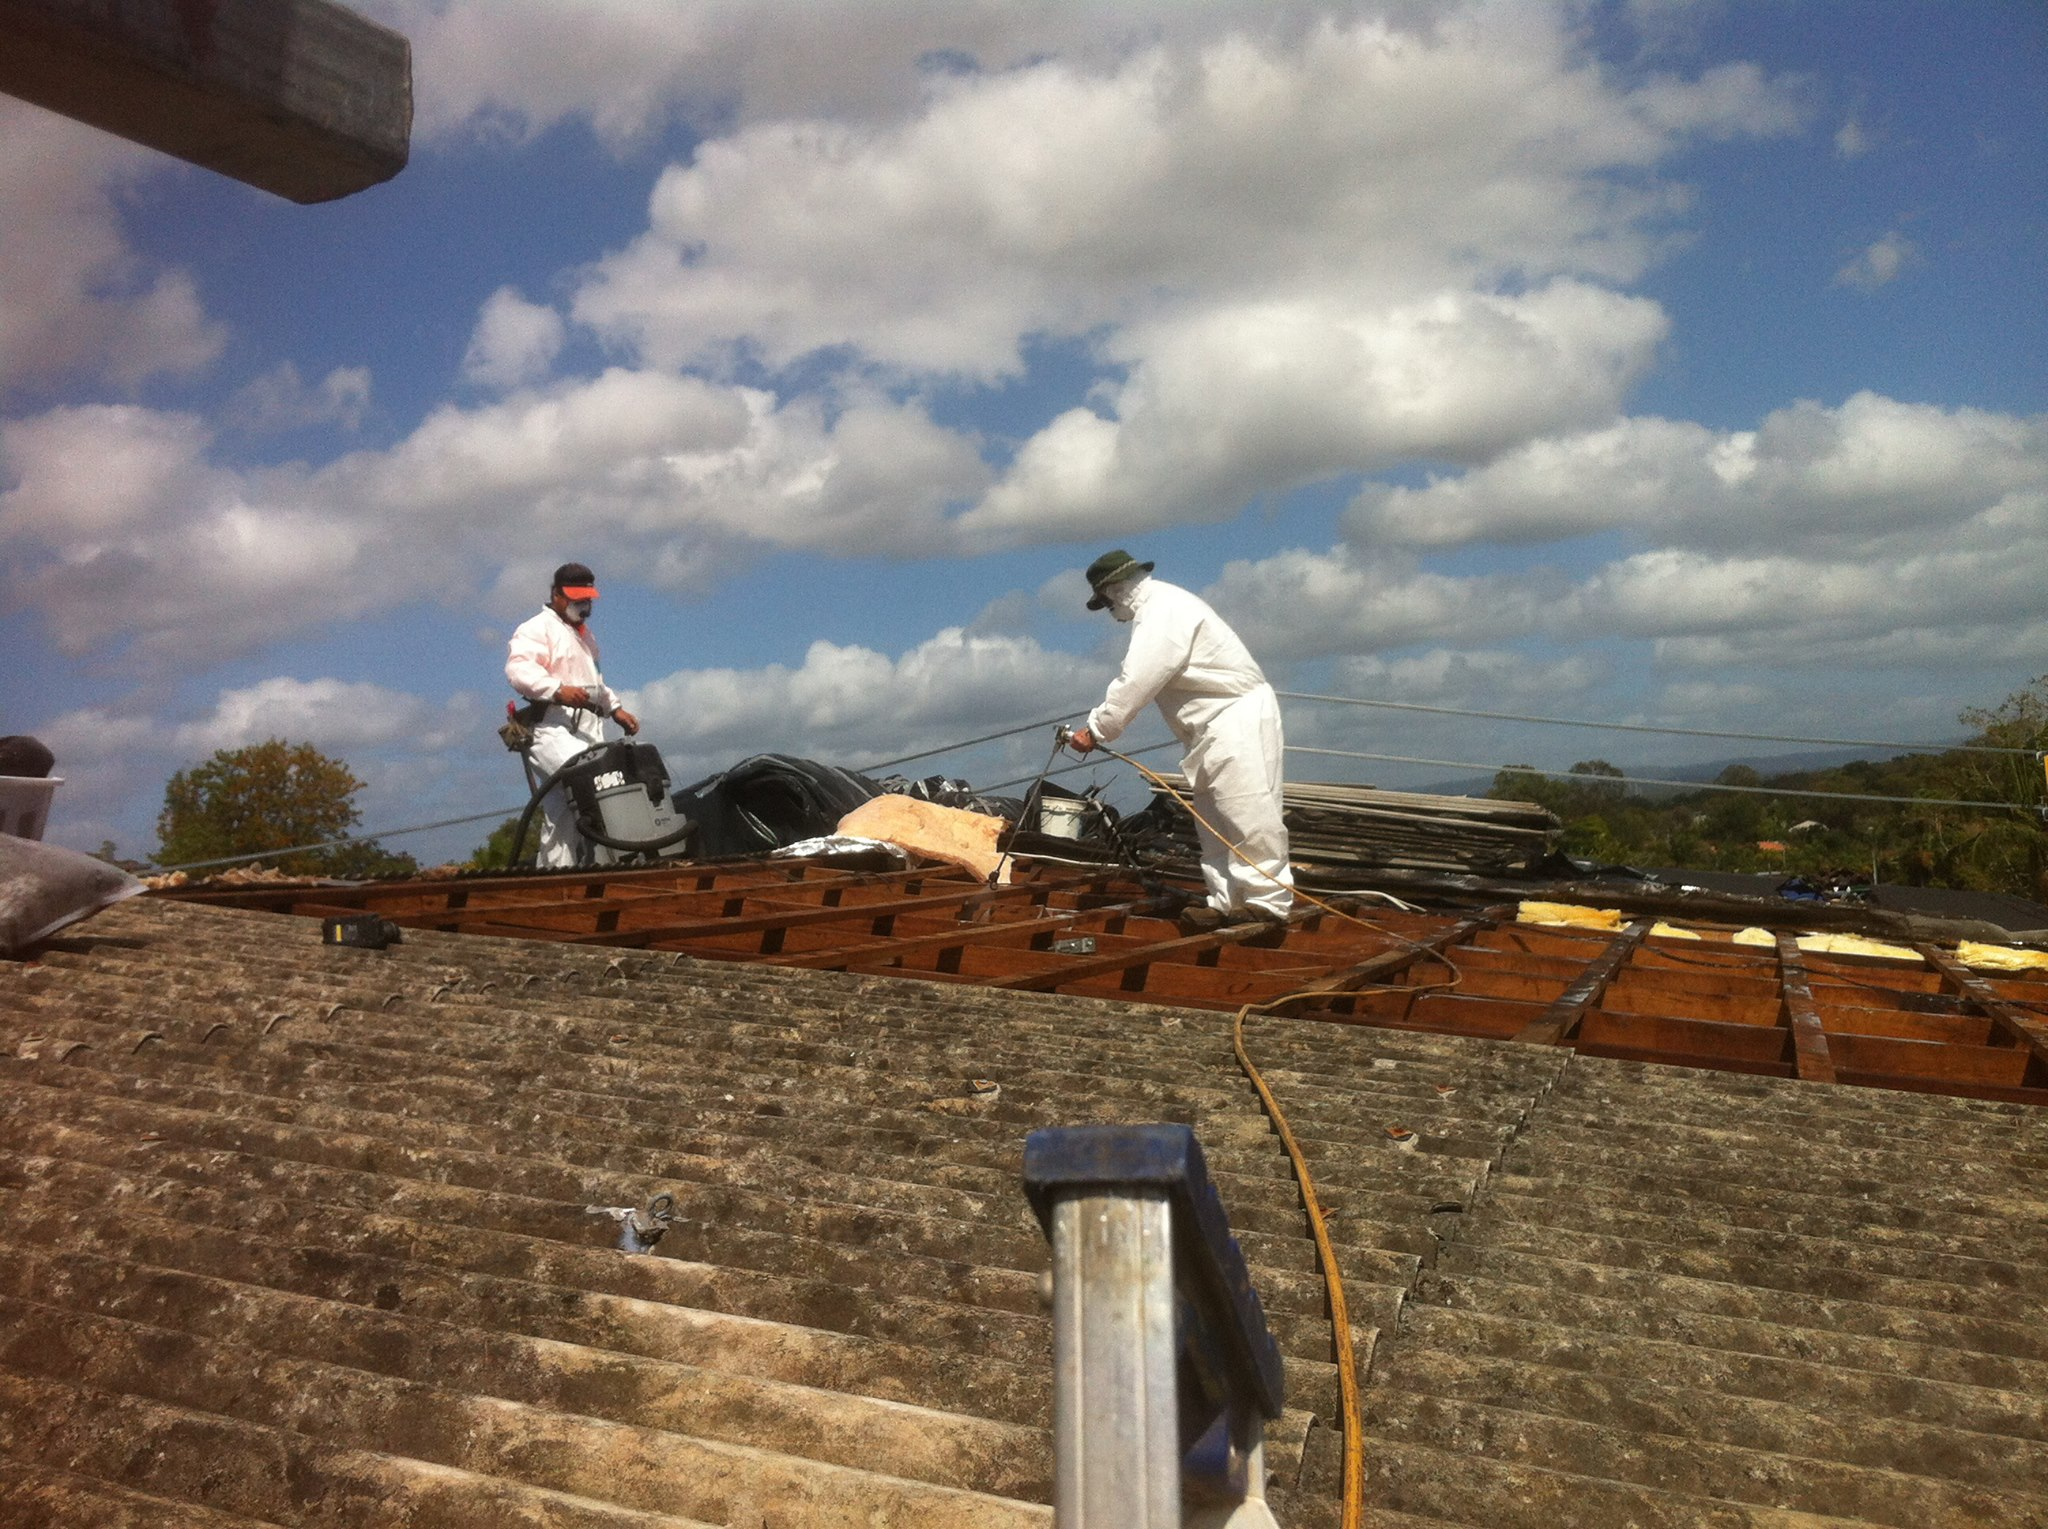 66c452 110a2299791a48bdbb6f3254c8e22cfb~mv2 d 2048 1529 s 2 - Asbestos roof removal what to expect on the day